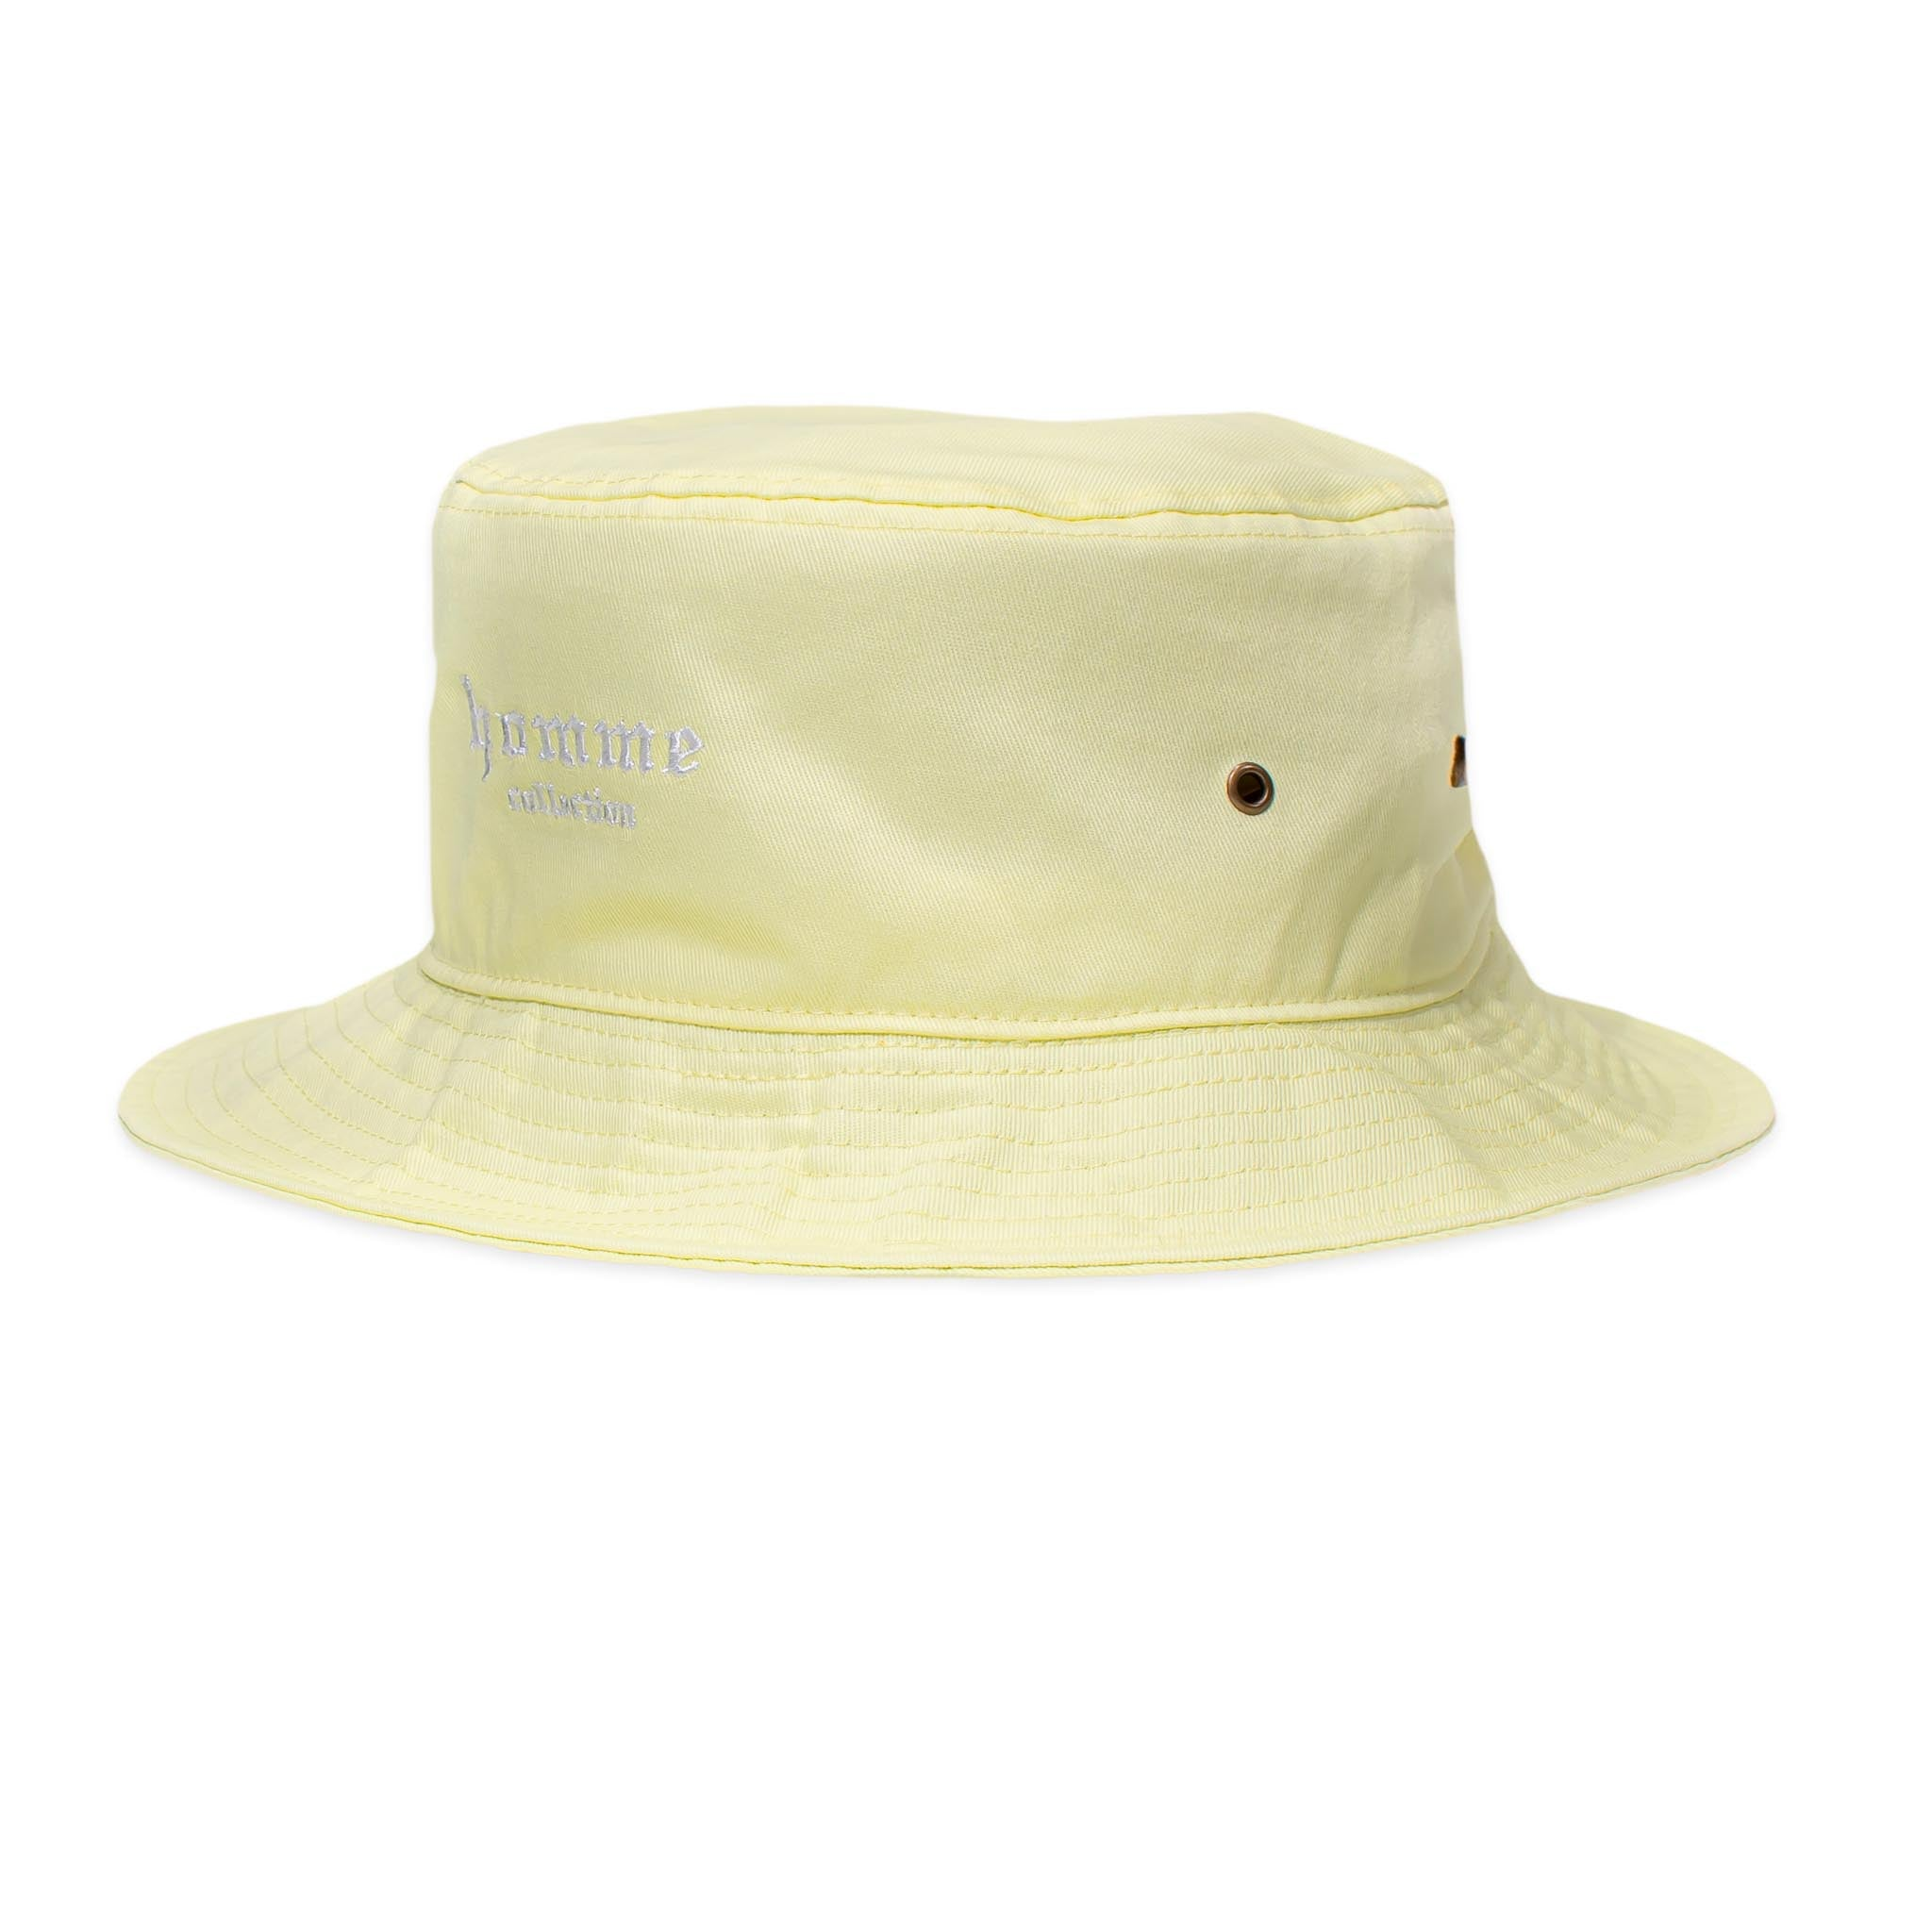 HOMME+ Collection Bucket Hat Light Yellow